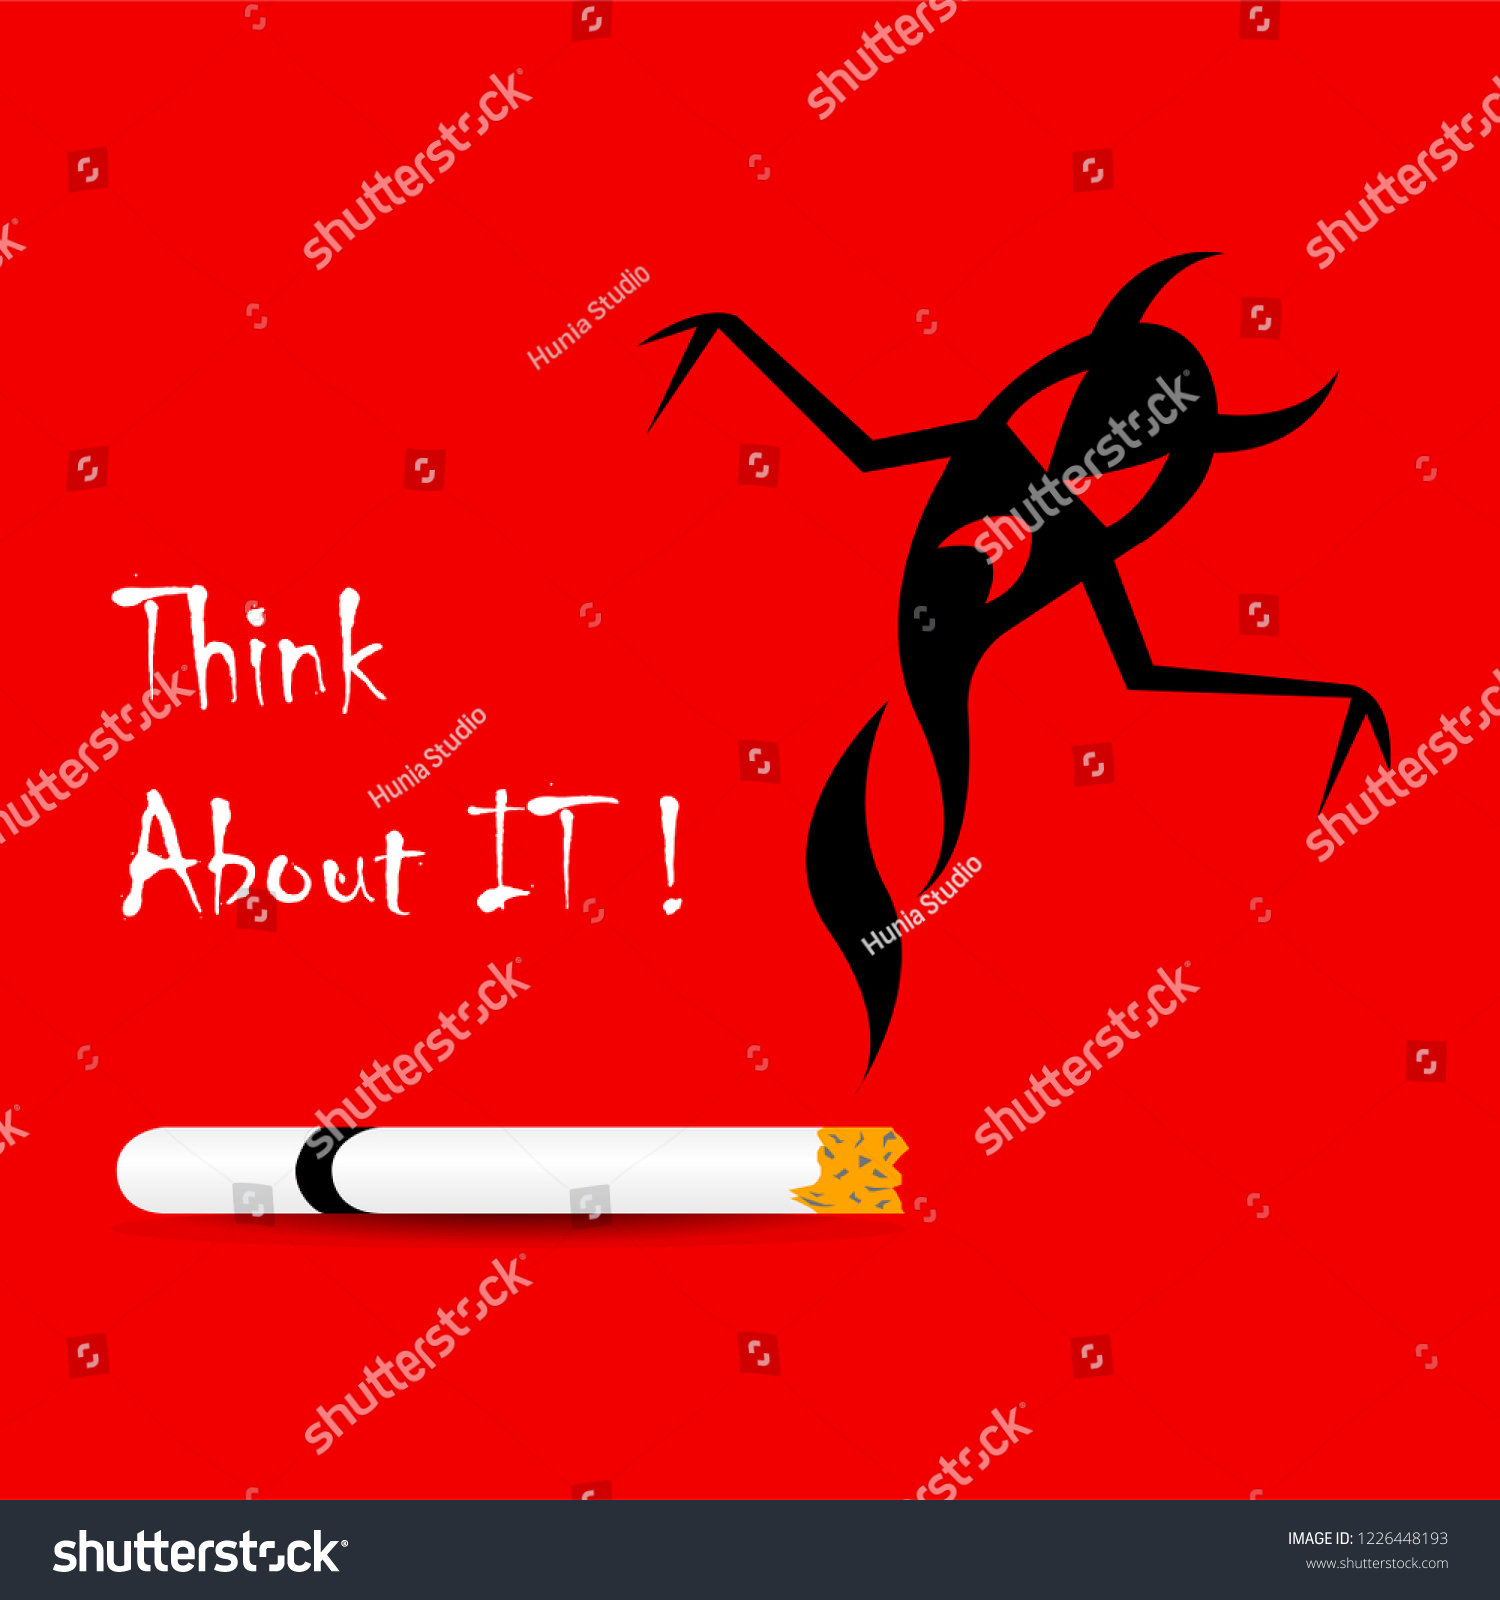 No Smoking Banner Illustration Red Background Stock Vector Royalty Free 1226448193